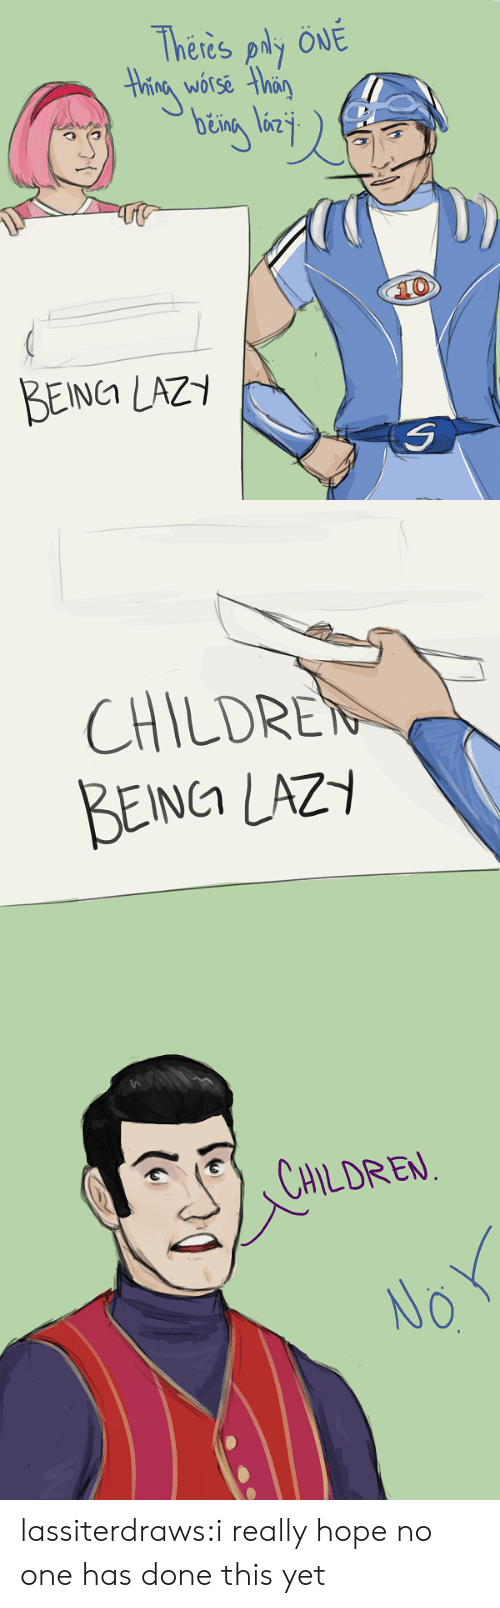 Children, Lazy, and Tumblr: Theres ply ÖNE  Hhing worse than  10  BEINCA LAZY   CHILDREN  BEING LAZY   CHILDREN  NO lassiterdraws:i really hope no one has done this yet